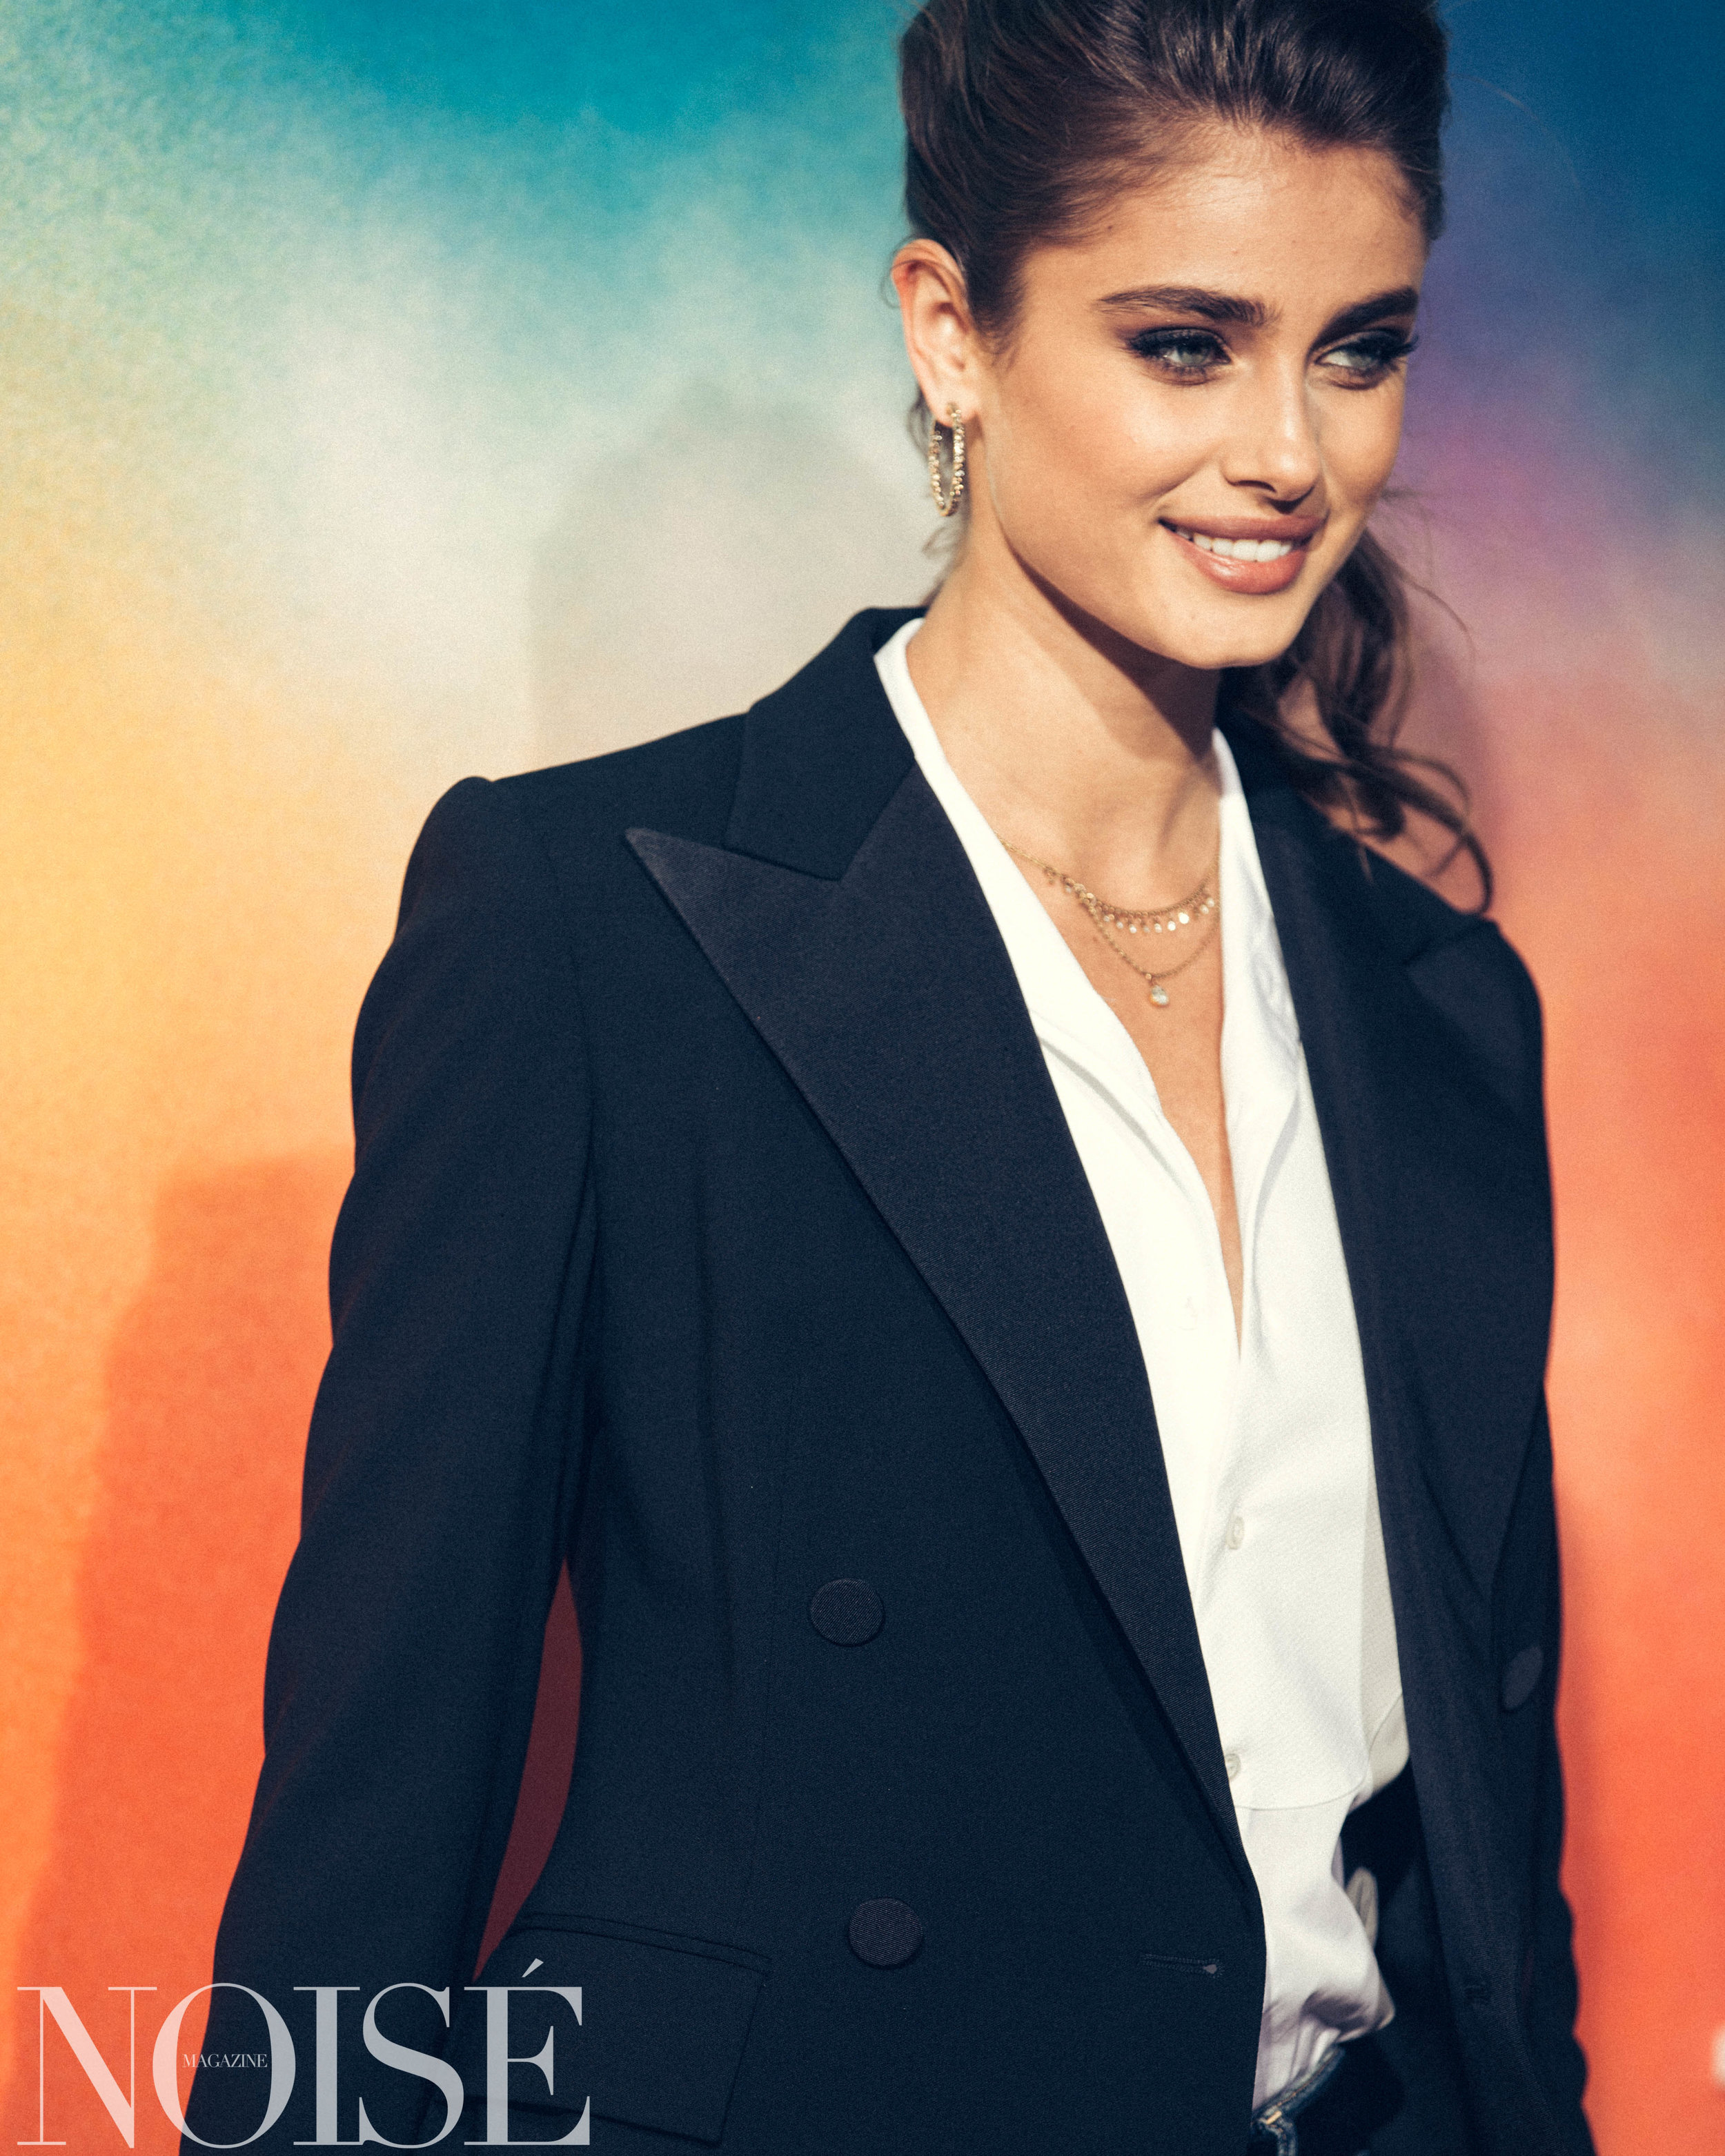 Taylor Hill wearing Ralph Lauren at BoF 500 gala, Photograph by Siyu Tang for NOISÉ